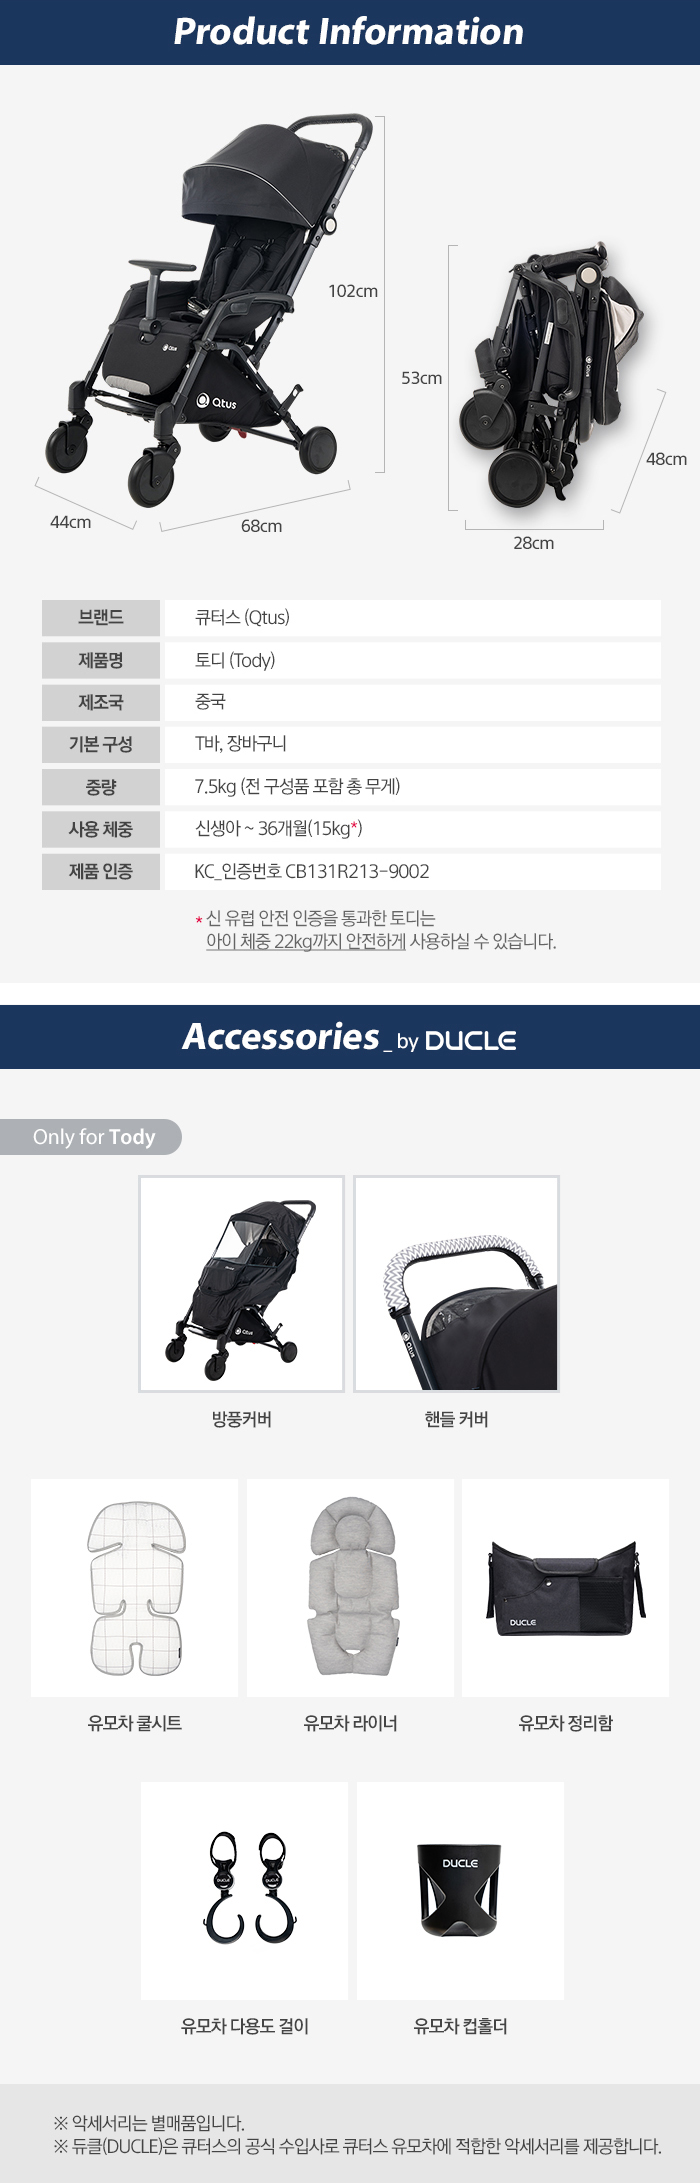 product information & acc